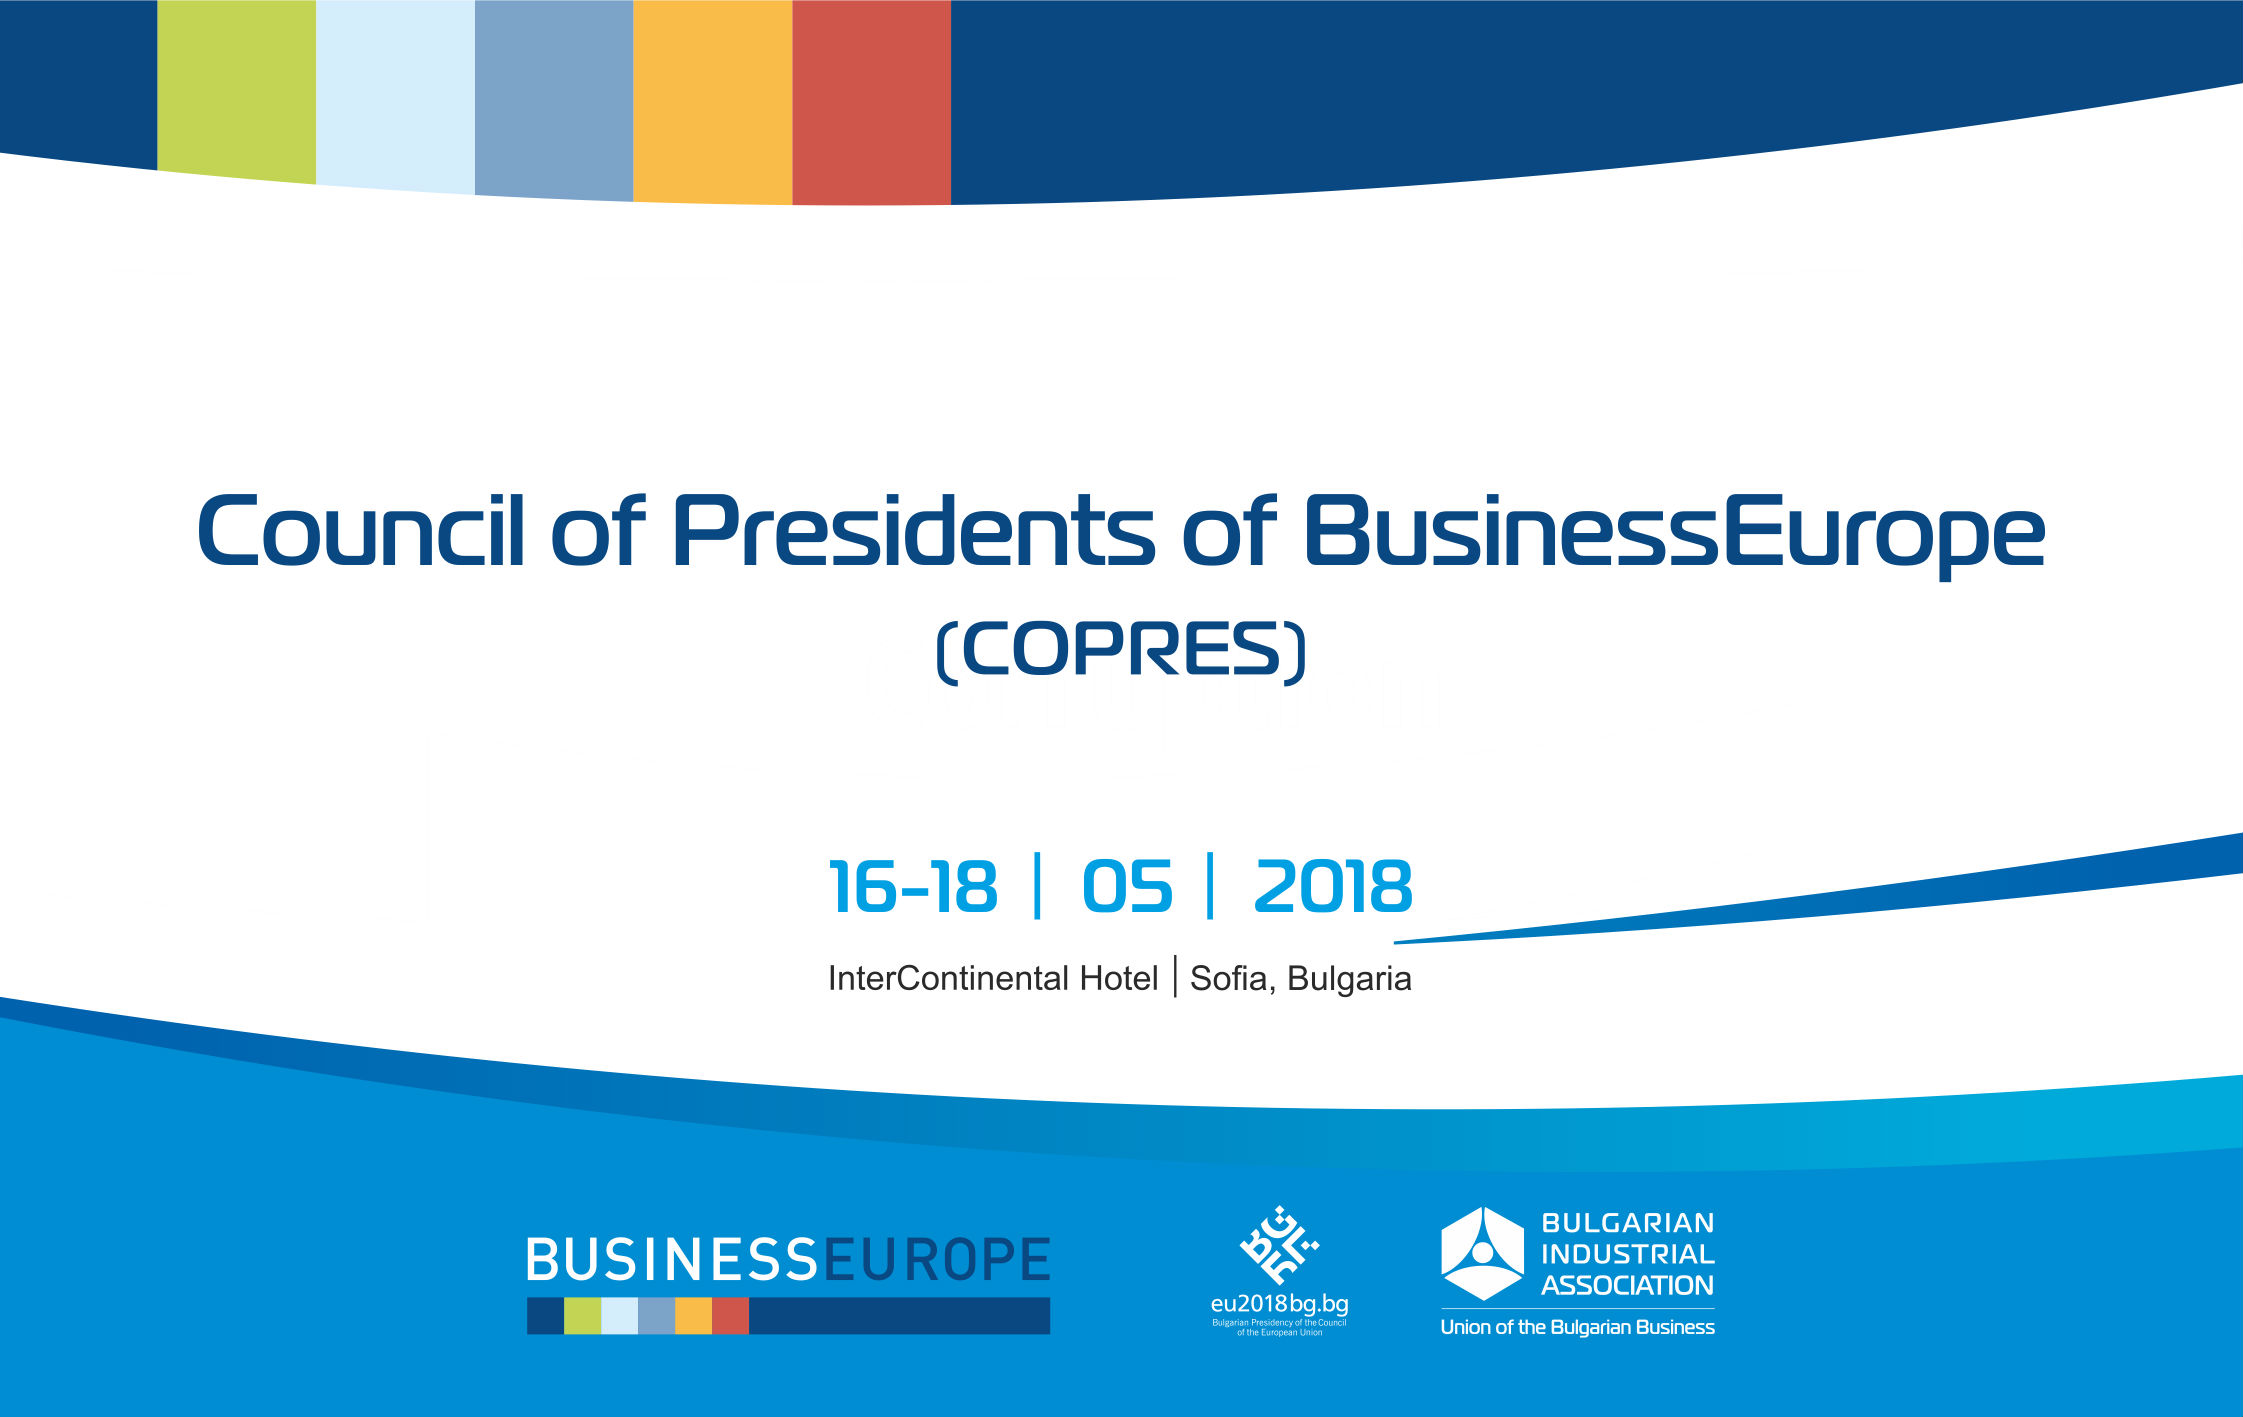 Съвет на президентите на BusinessEurope (BusinessEurope Council of Presidents - COPRES)